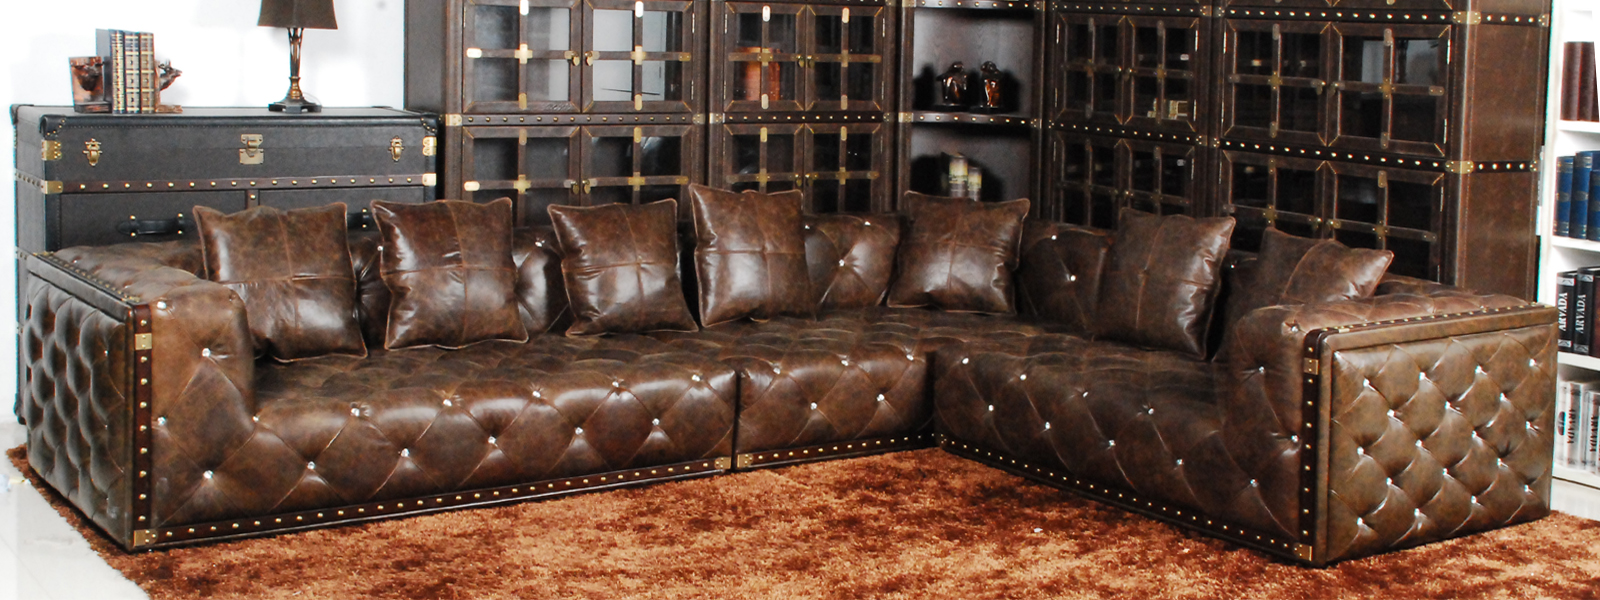 Classic chesterfield long sofa  real leather